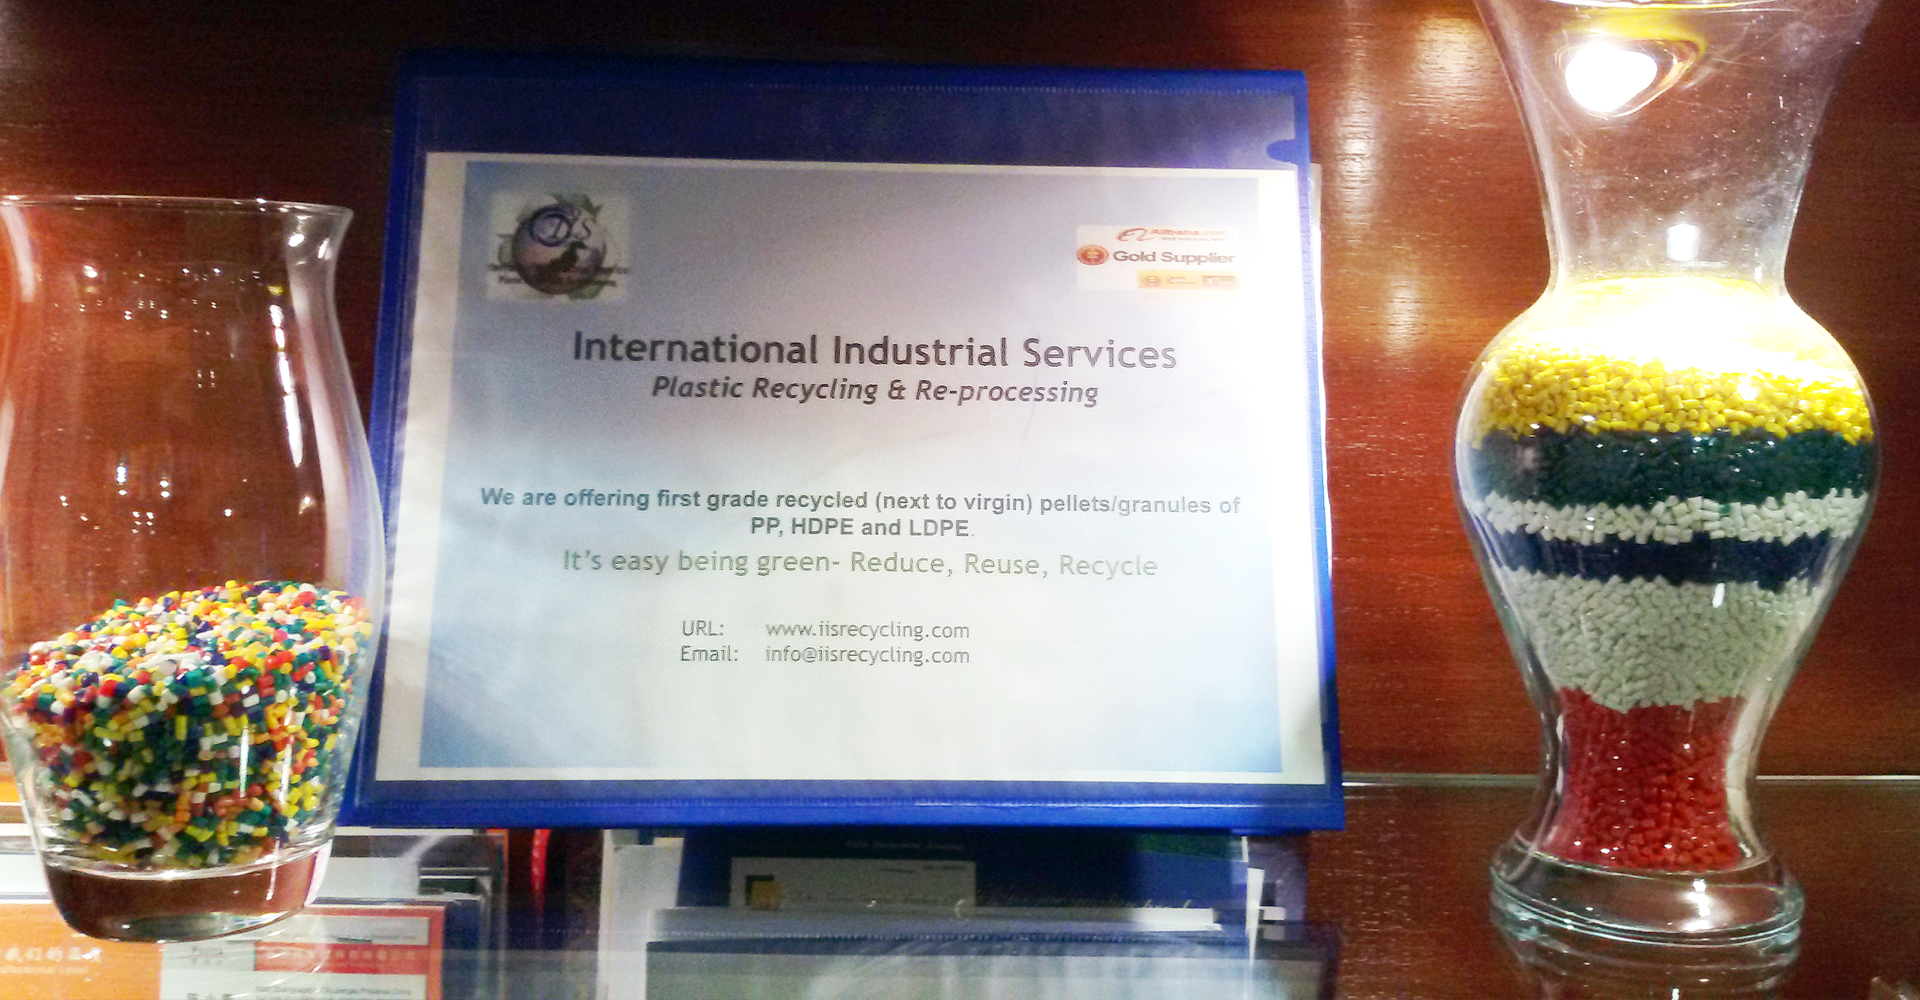 International Industrial Services